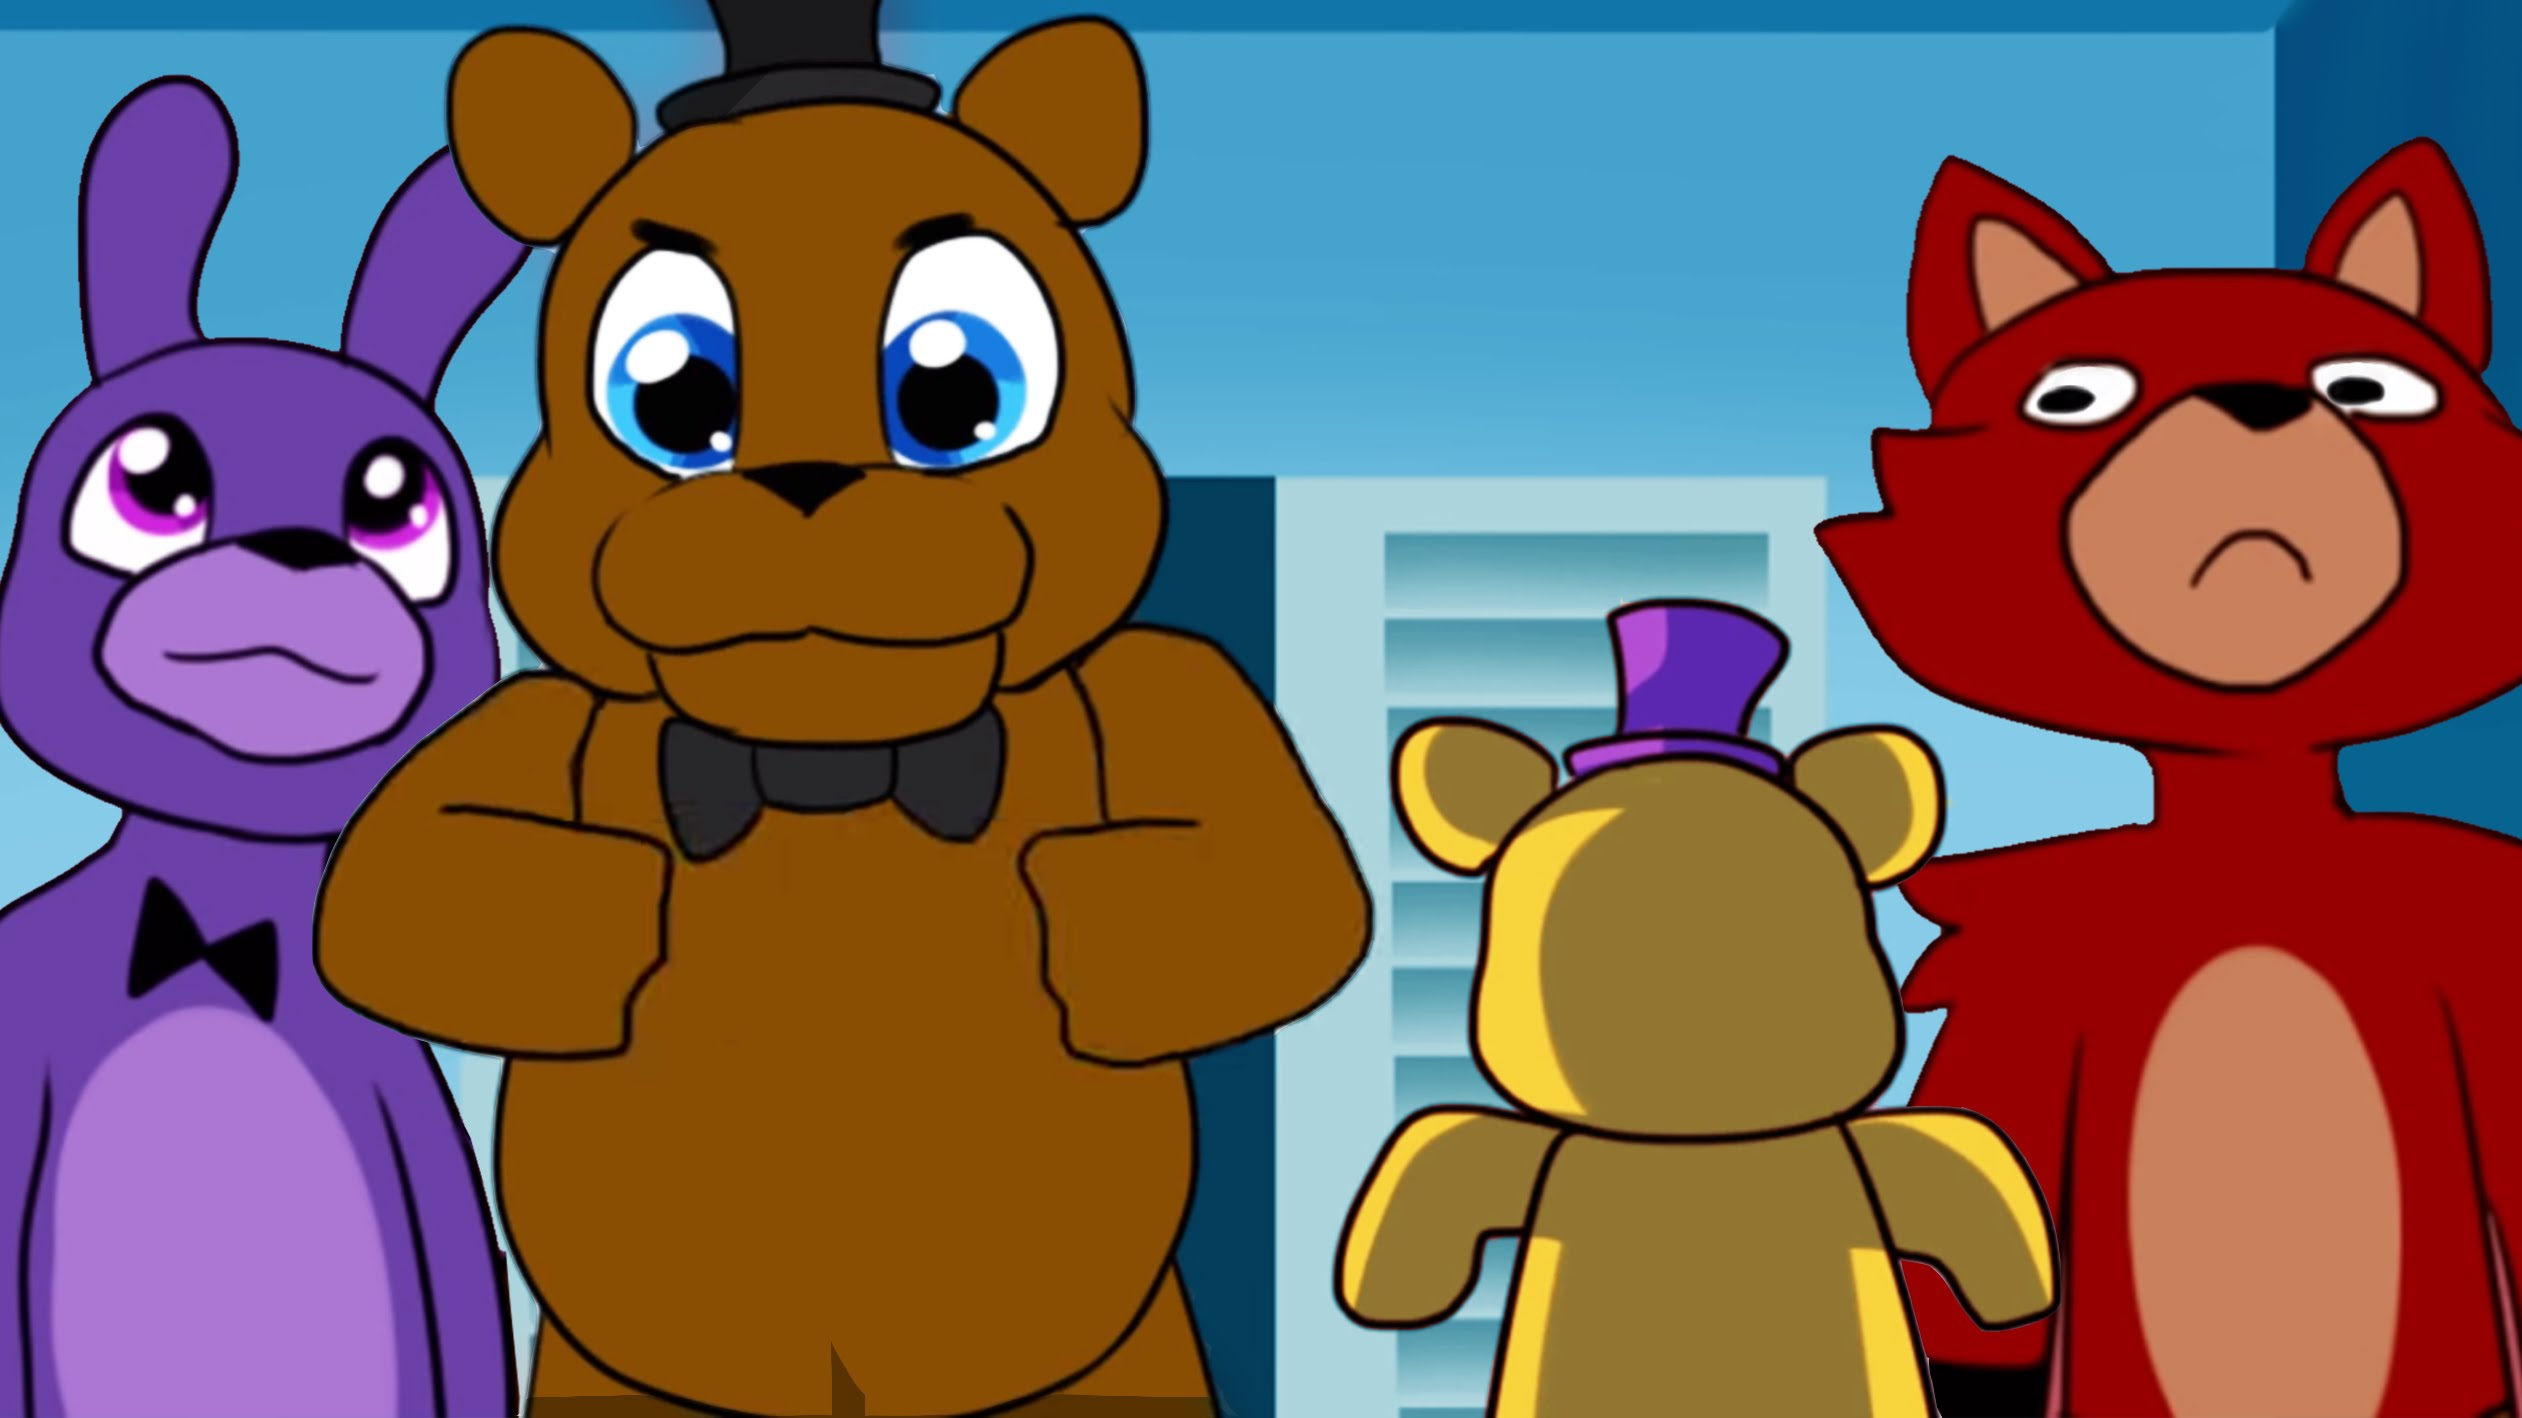 Comic Animation] Cute Nights at Freddy's - YouTube